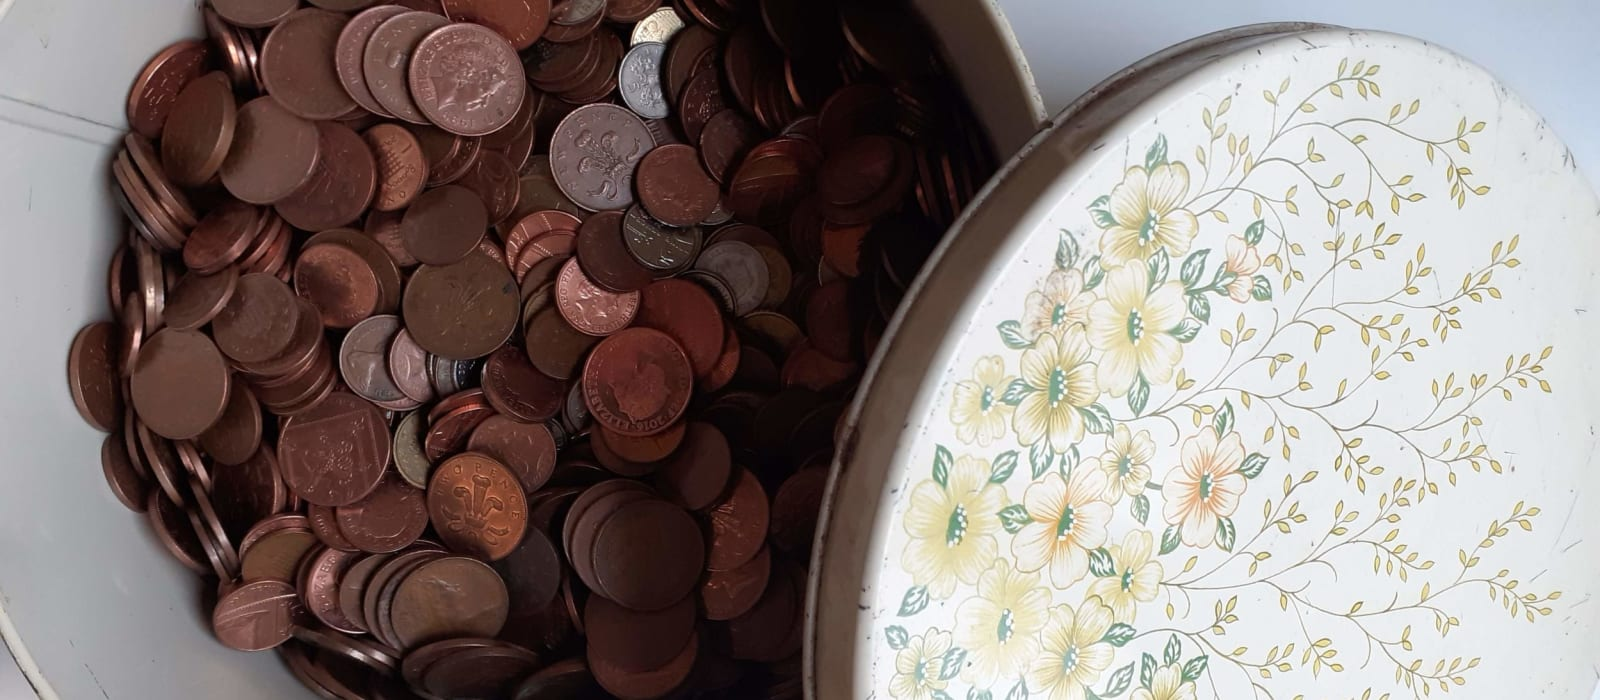 A round tin with floral decorations full of 1 and 2 pence coins.